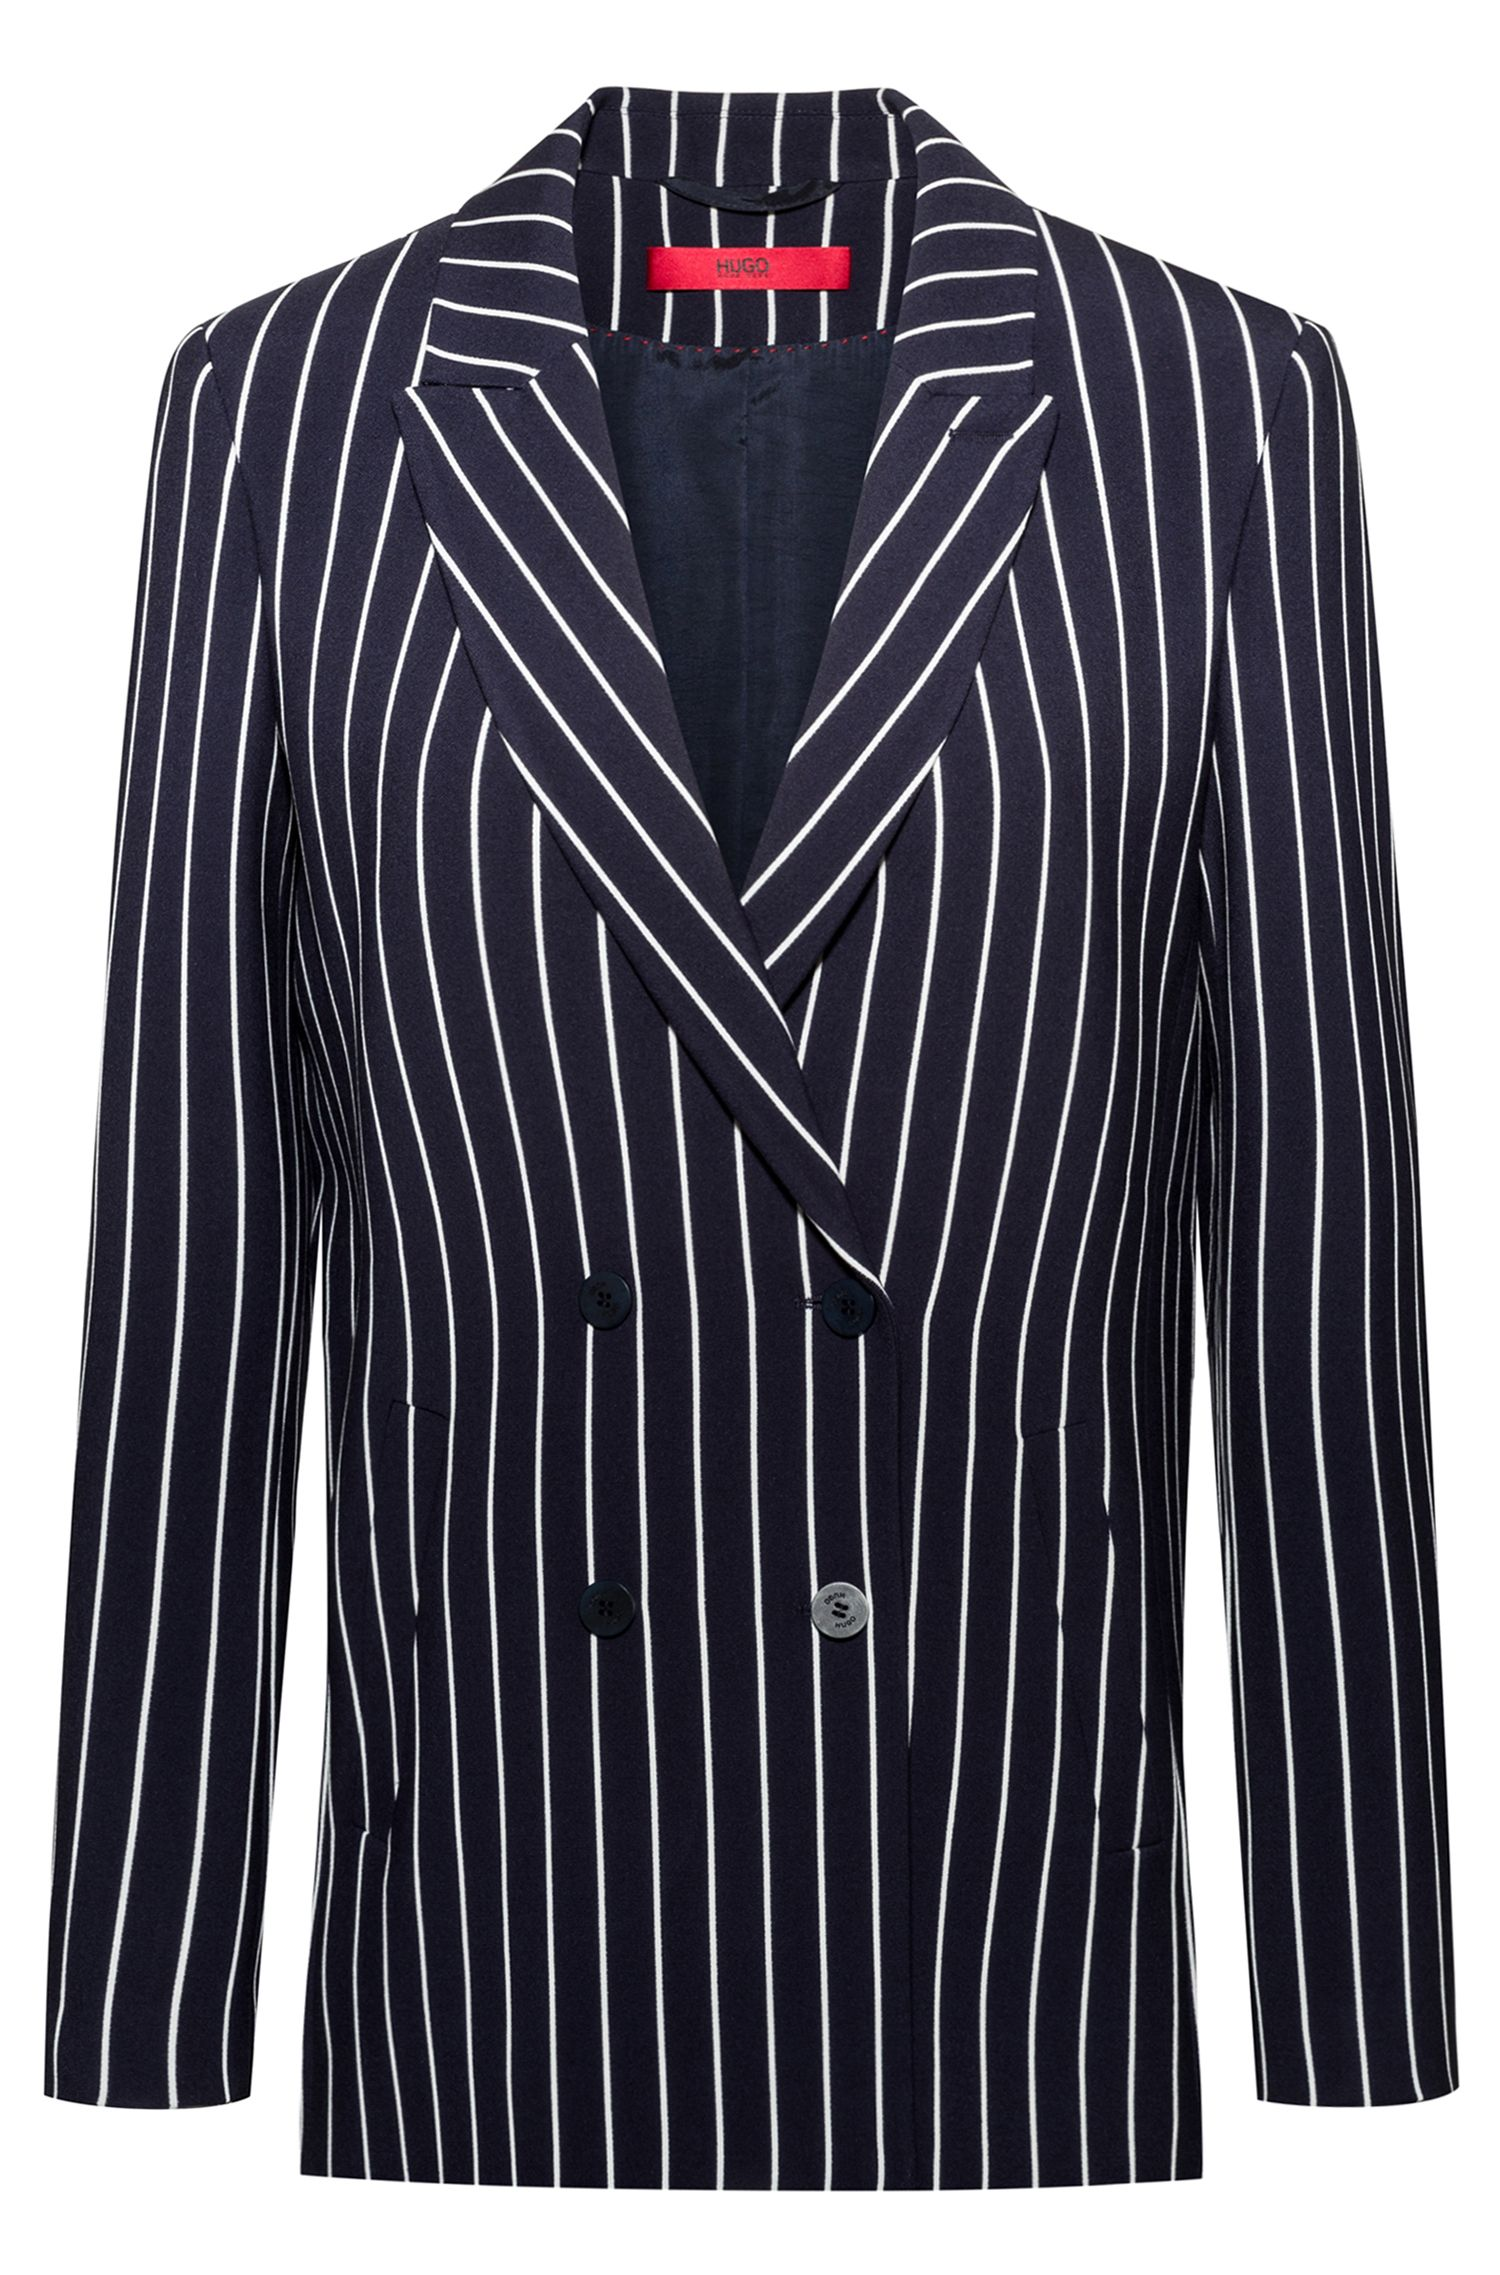 Regular-fit double-breasted jacket in striped fabric, Patterned